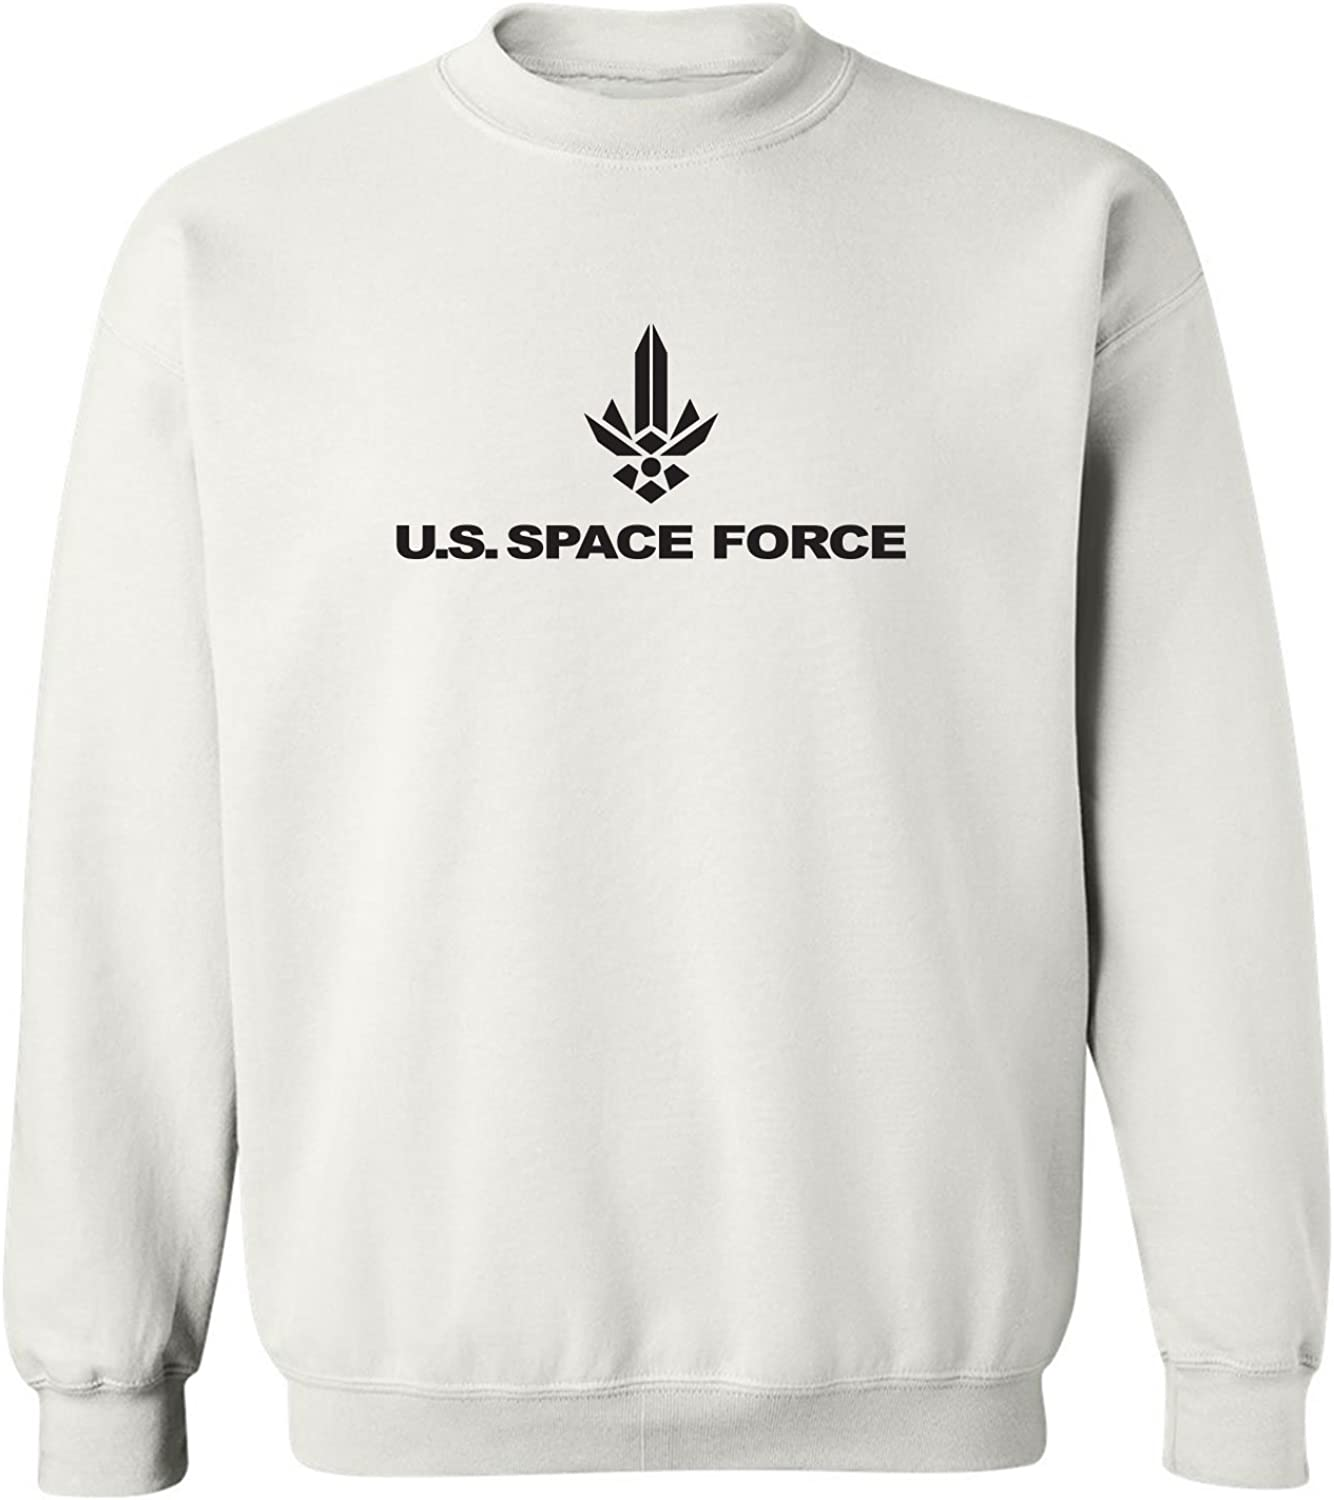 United States Space Force Logo 2 Crewneck Sweatshirt